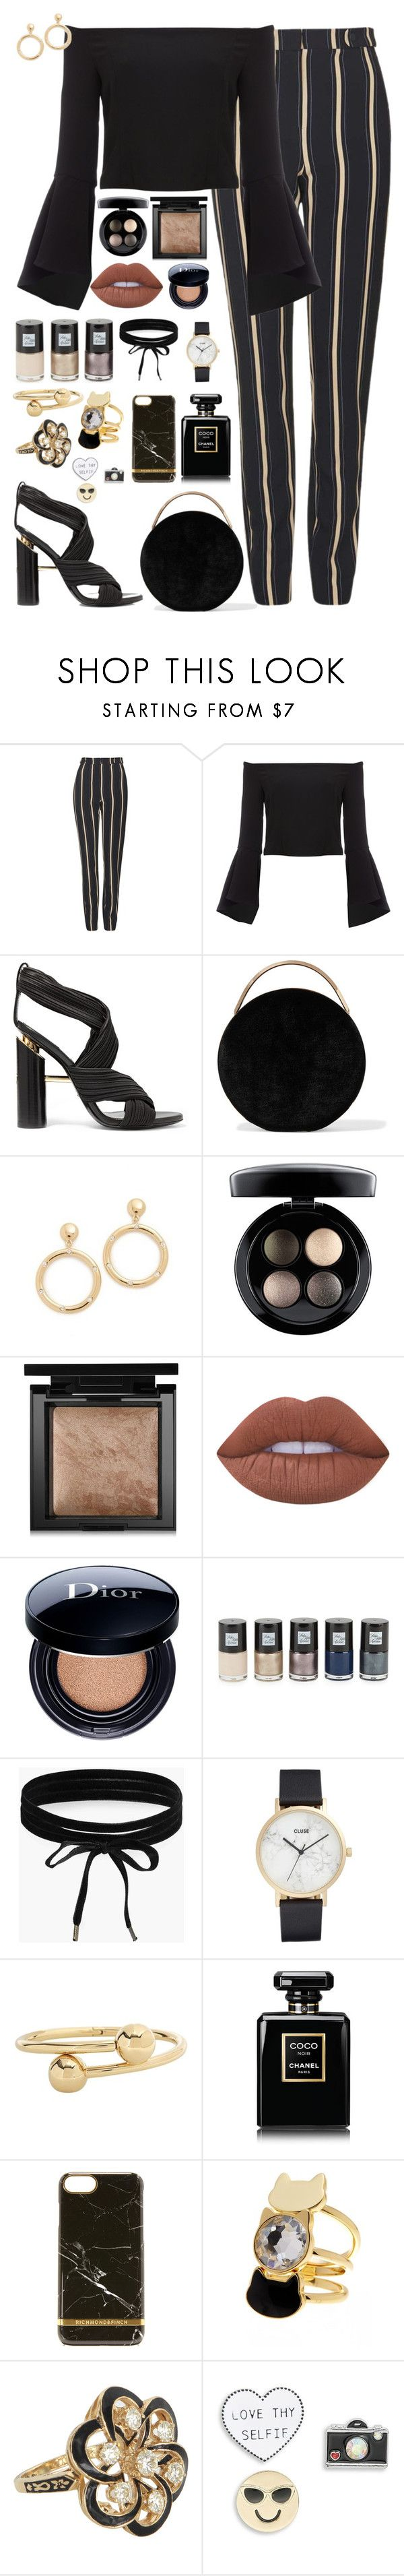 """""""Stripes"""" by fabirm ❤ liked on Polyvore featuring Topshop, Bardot, Tom Ford, Eddie Borgo, Kate Spade, MAC Cosmetics, Bare Escentuals, Lime Crime, Christian Dior and Saks Fifth Avenue"""